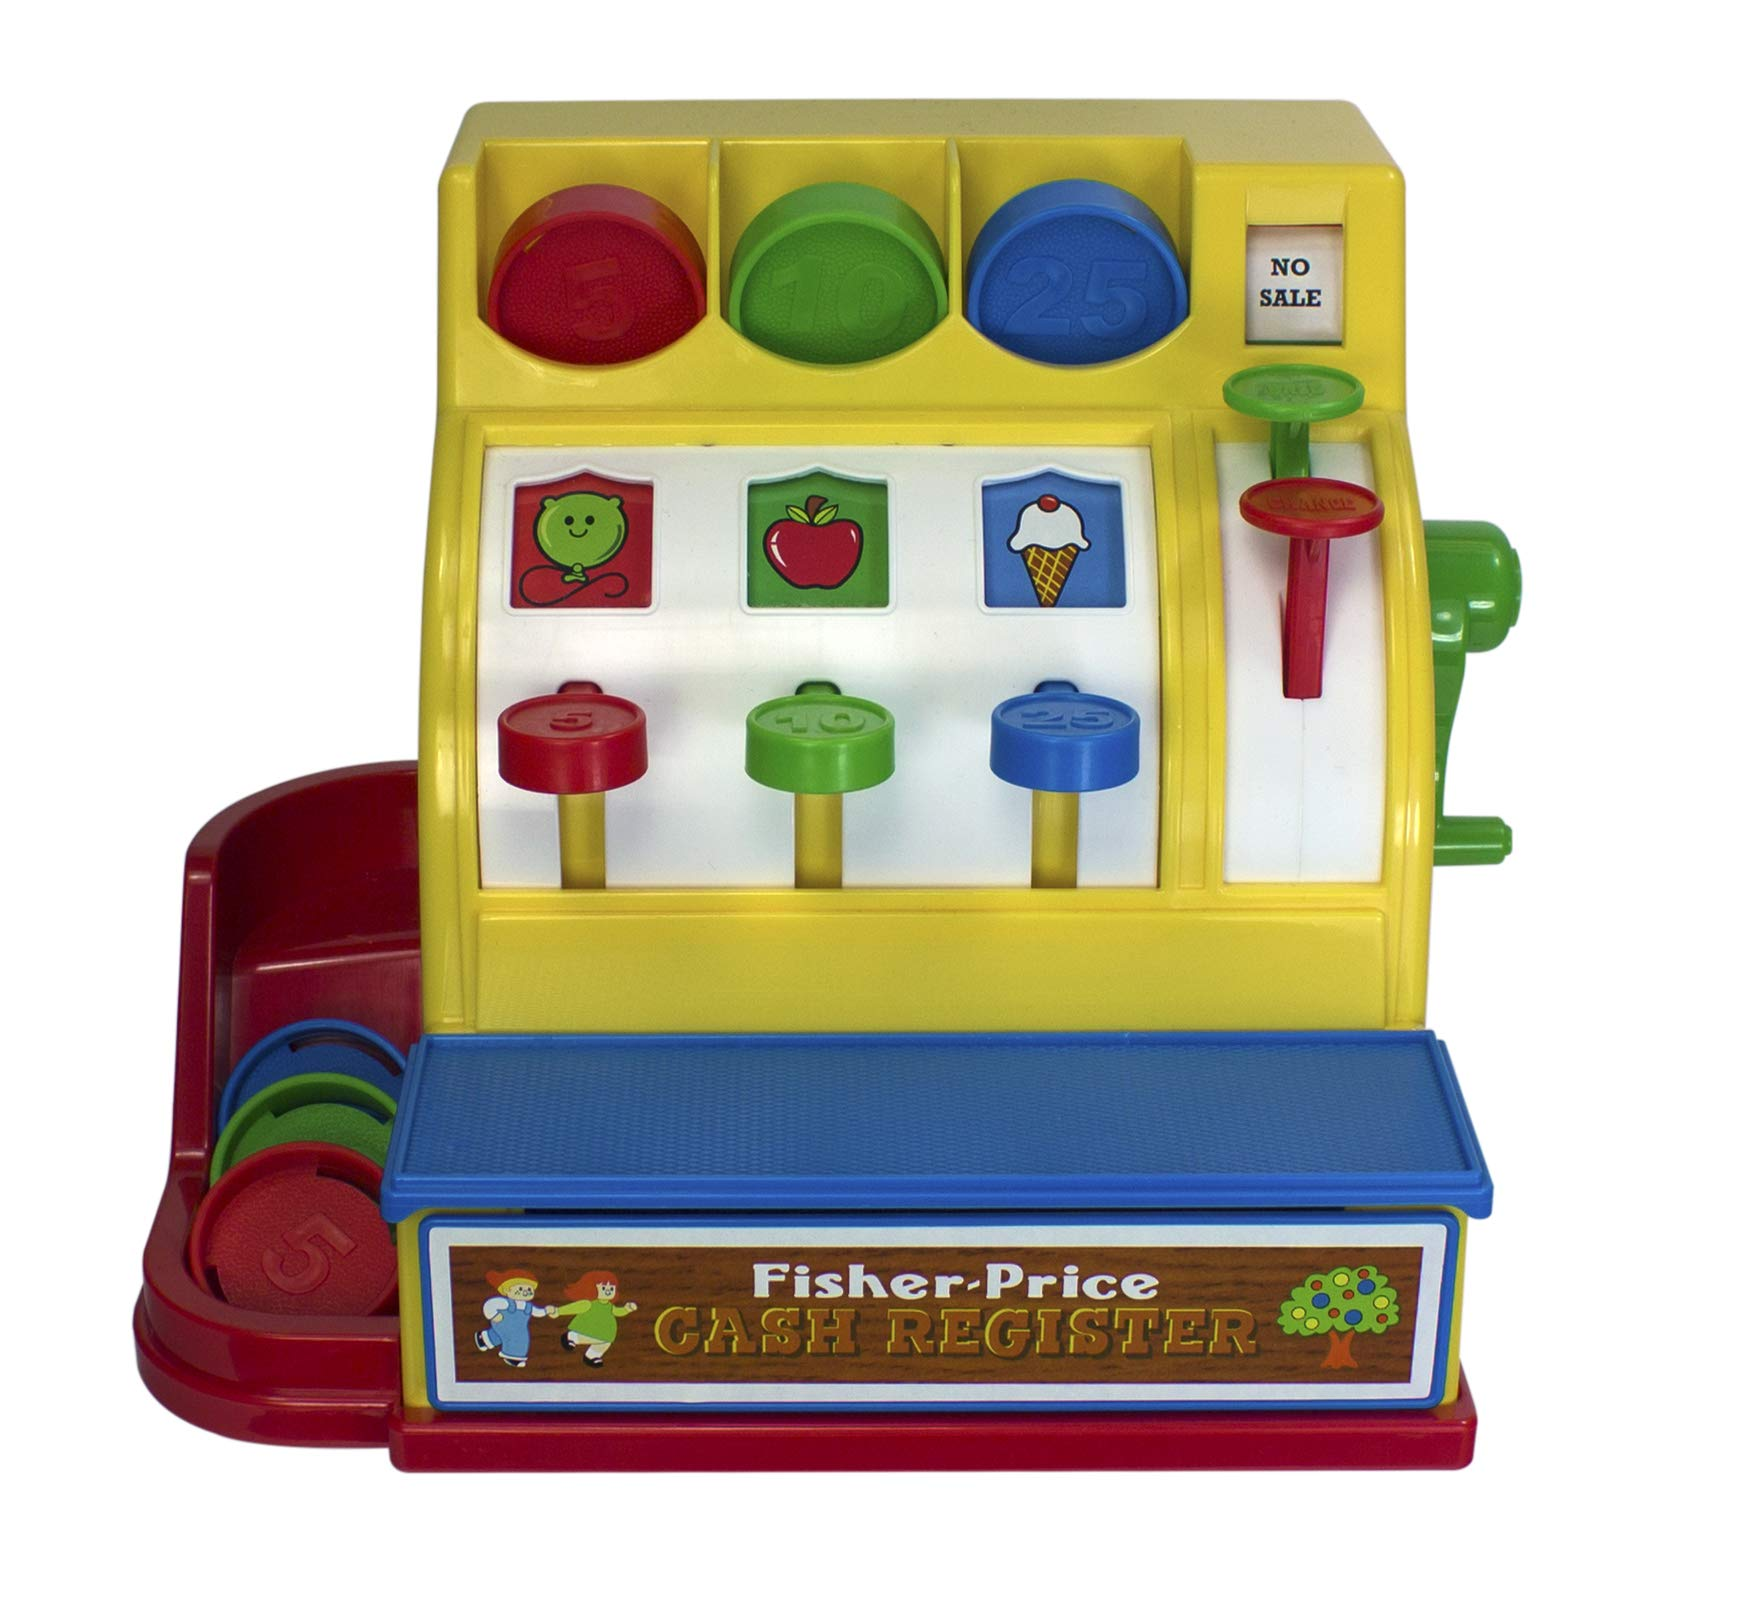 Fisher-Price Classics Retro Cash Register by Basic Fun